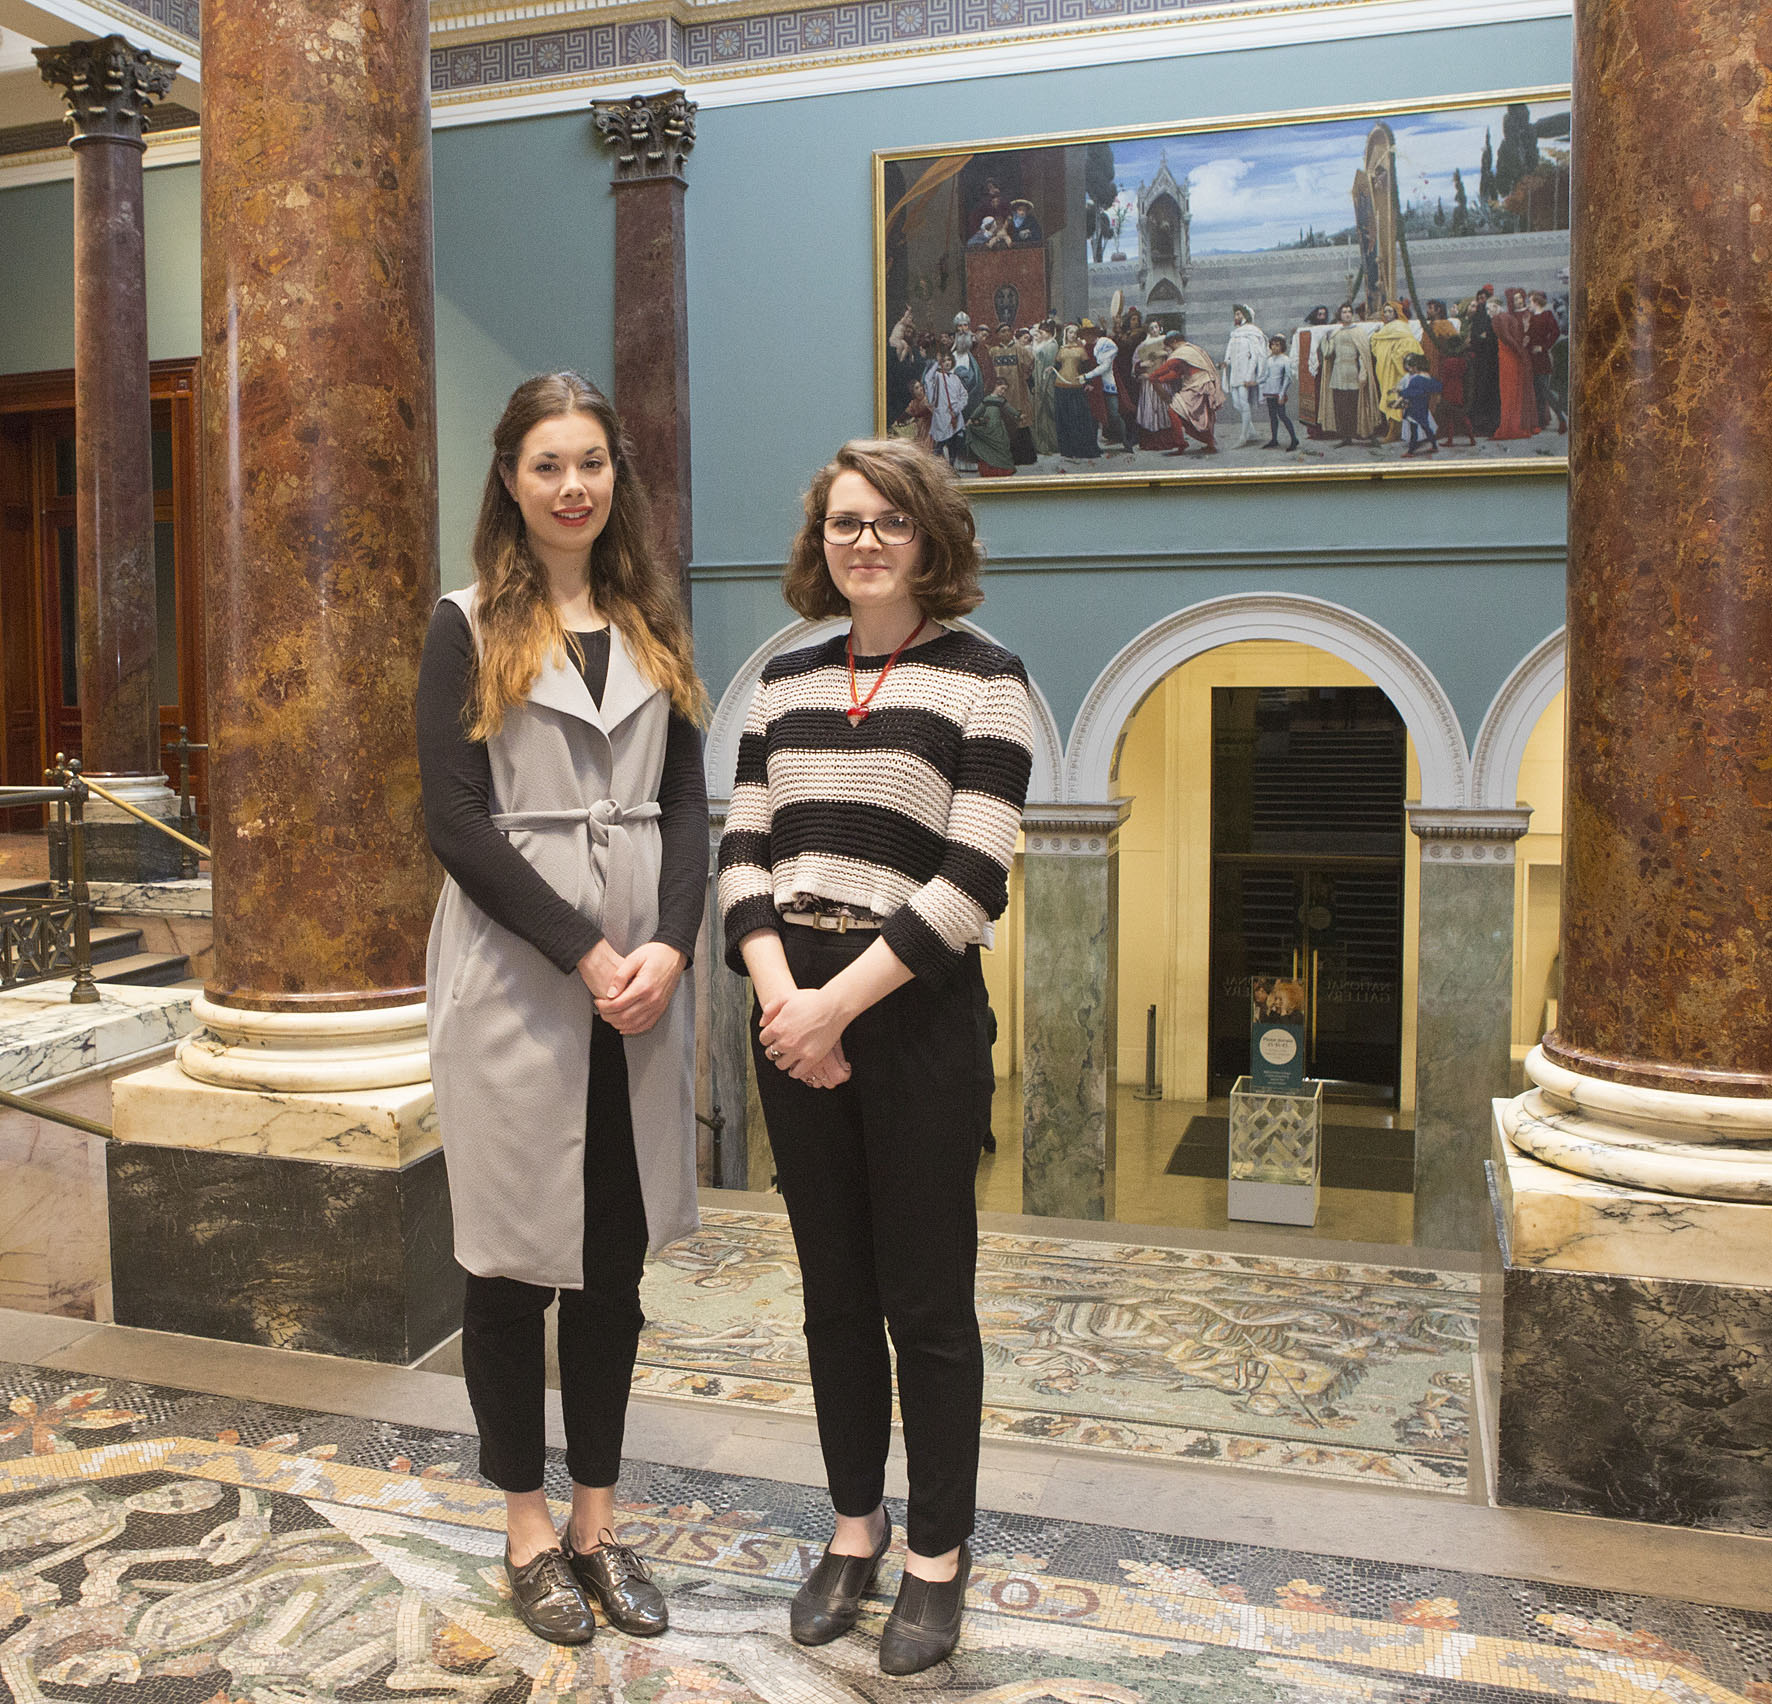 National Gallery Curatorial Trainees Lucy West and Sylvie Broussine